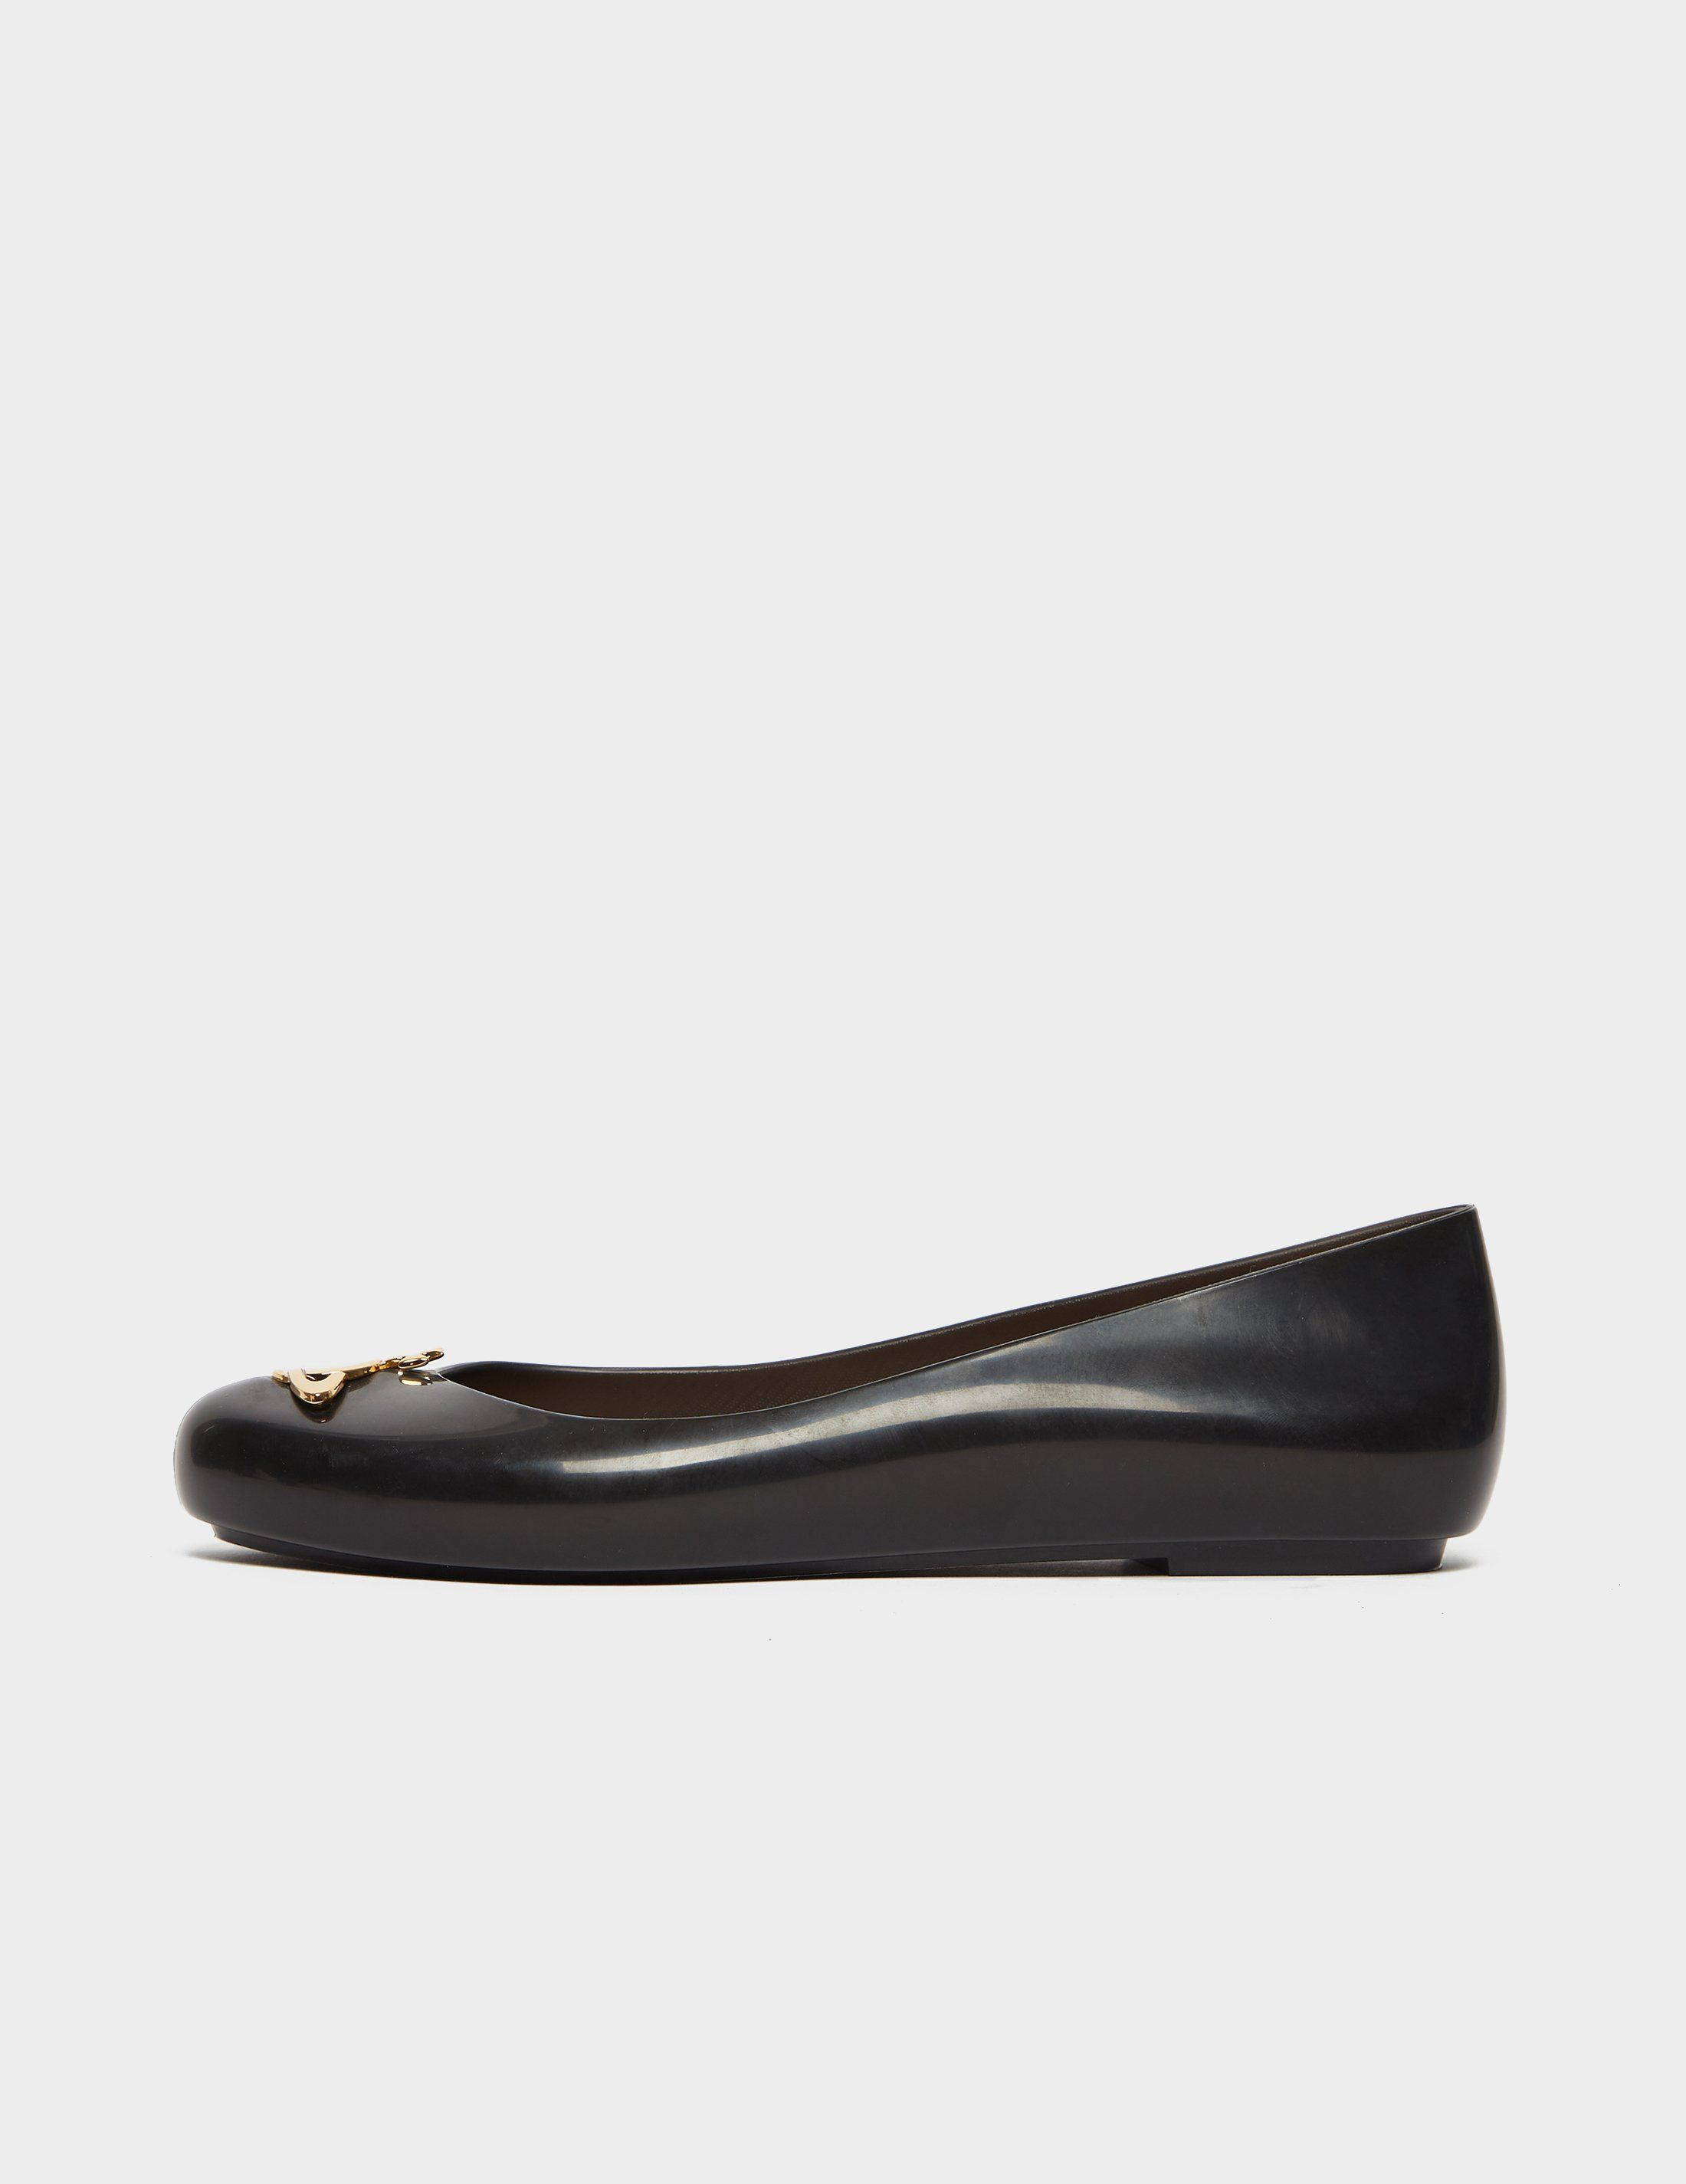 Melissa x Vivienne Westwood Space Love Orb Pumps